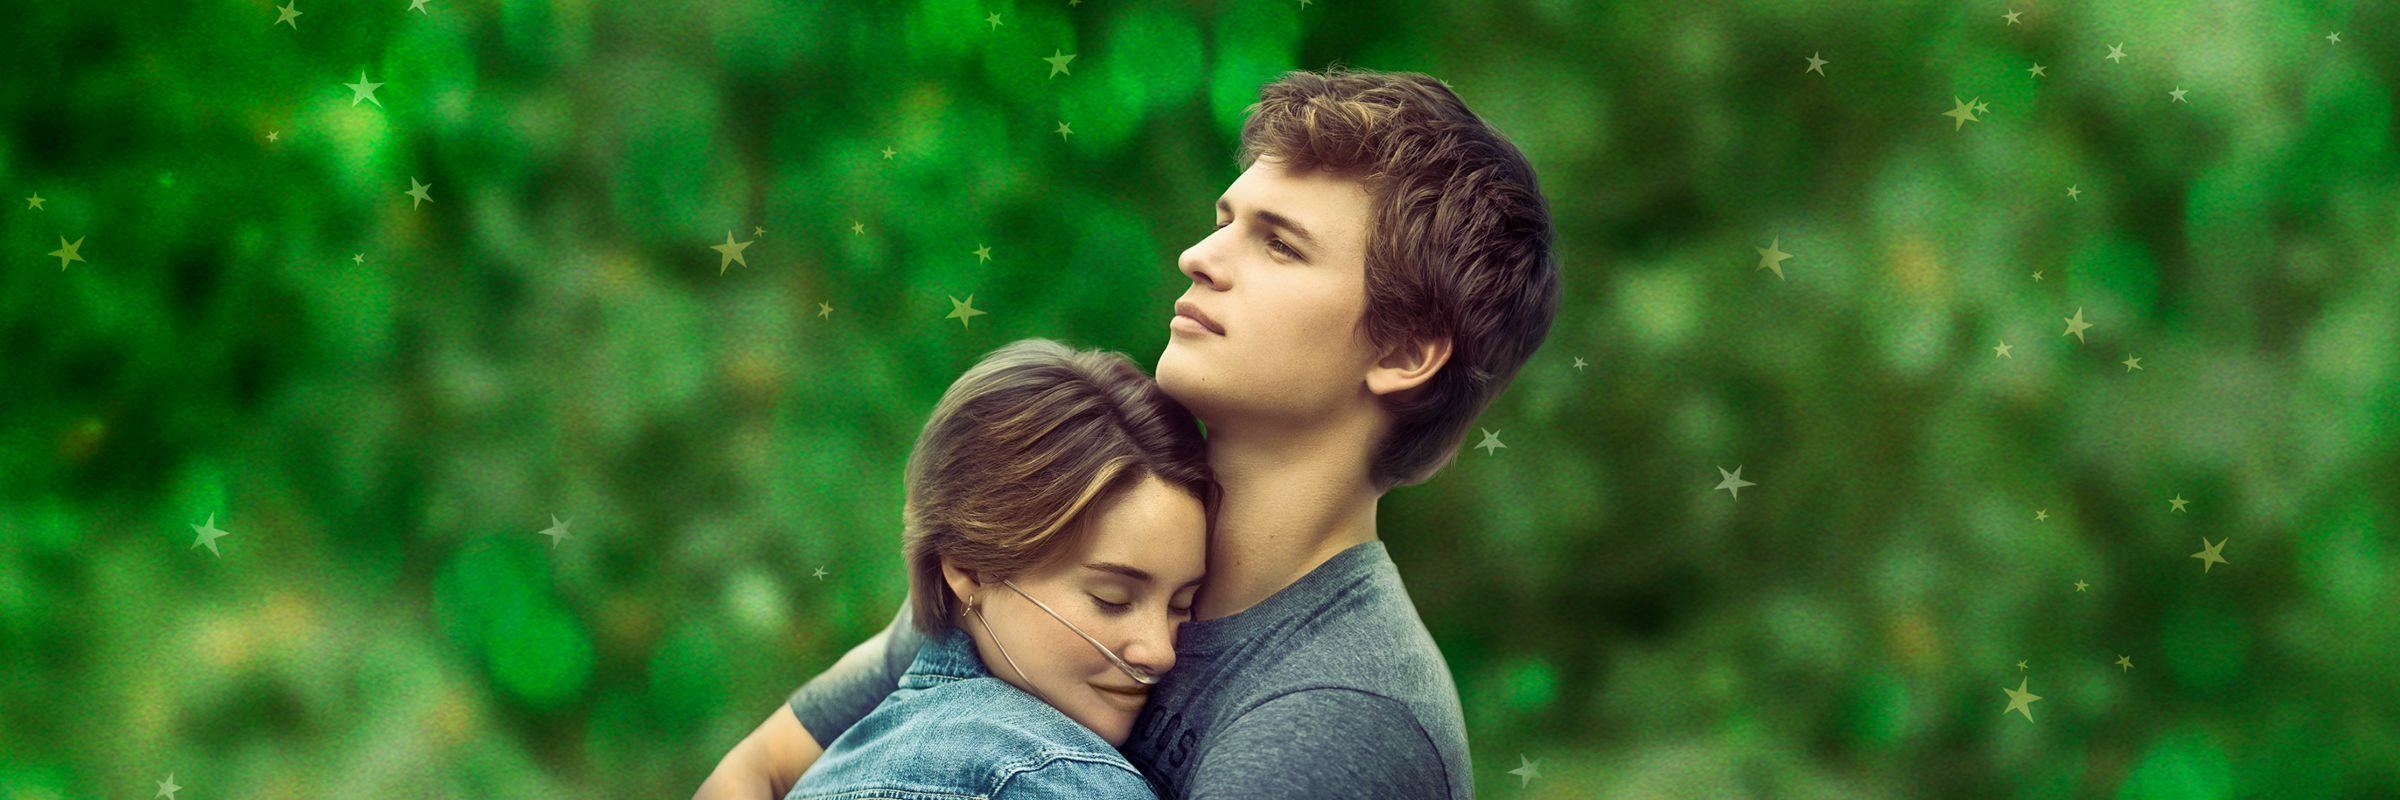 fault in our stars full movie watch online free